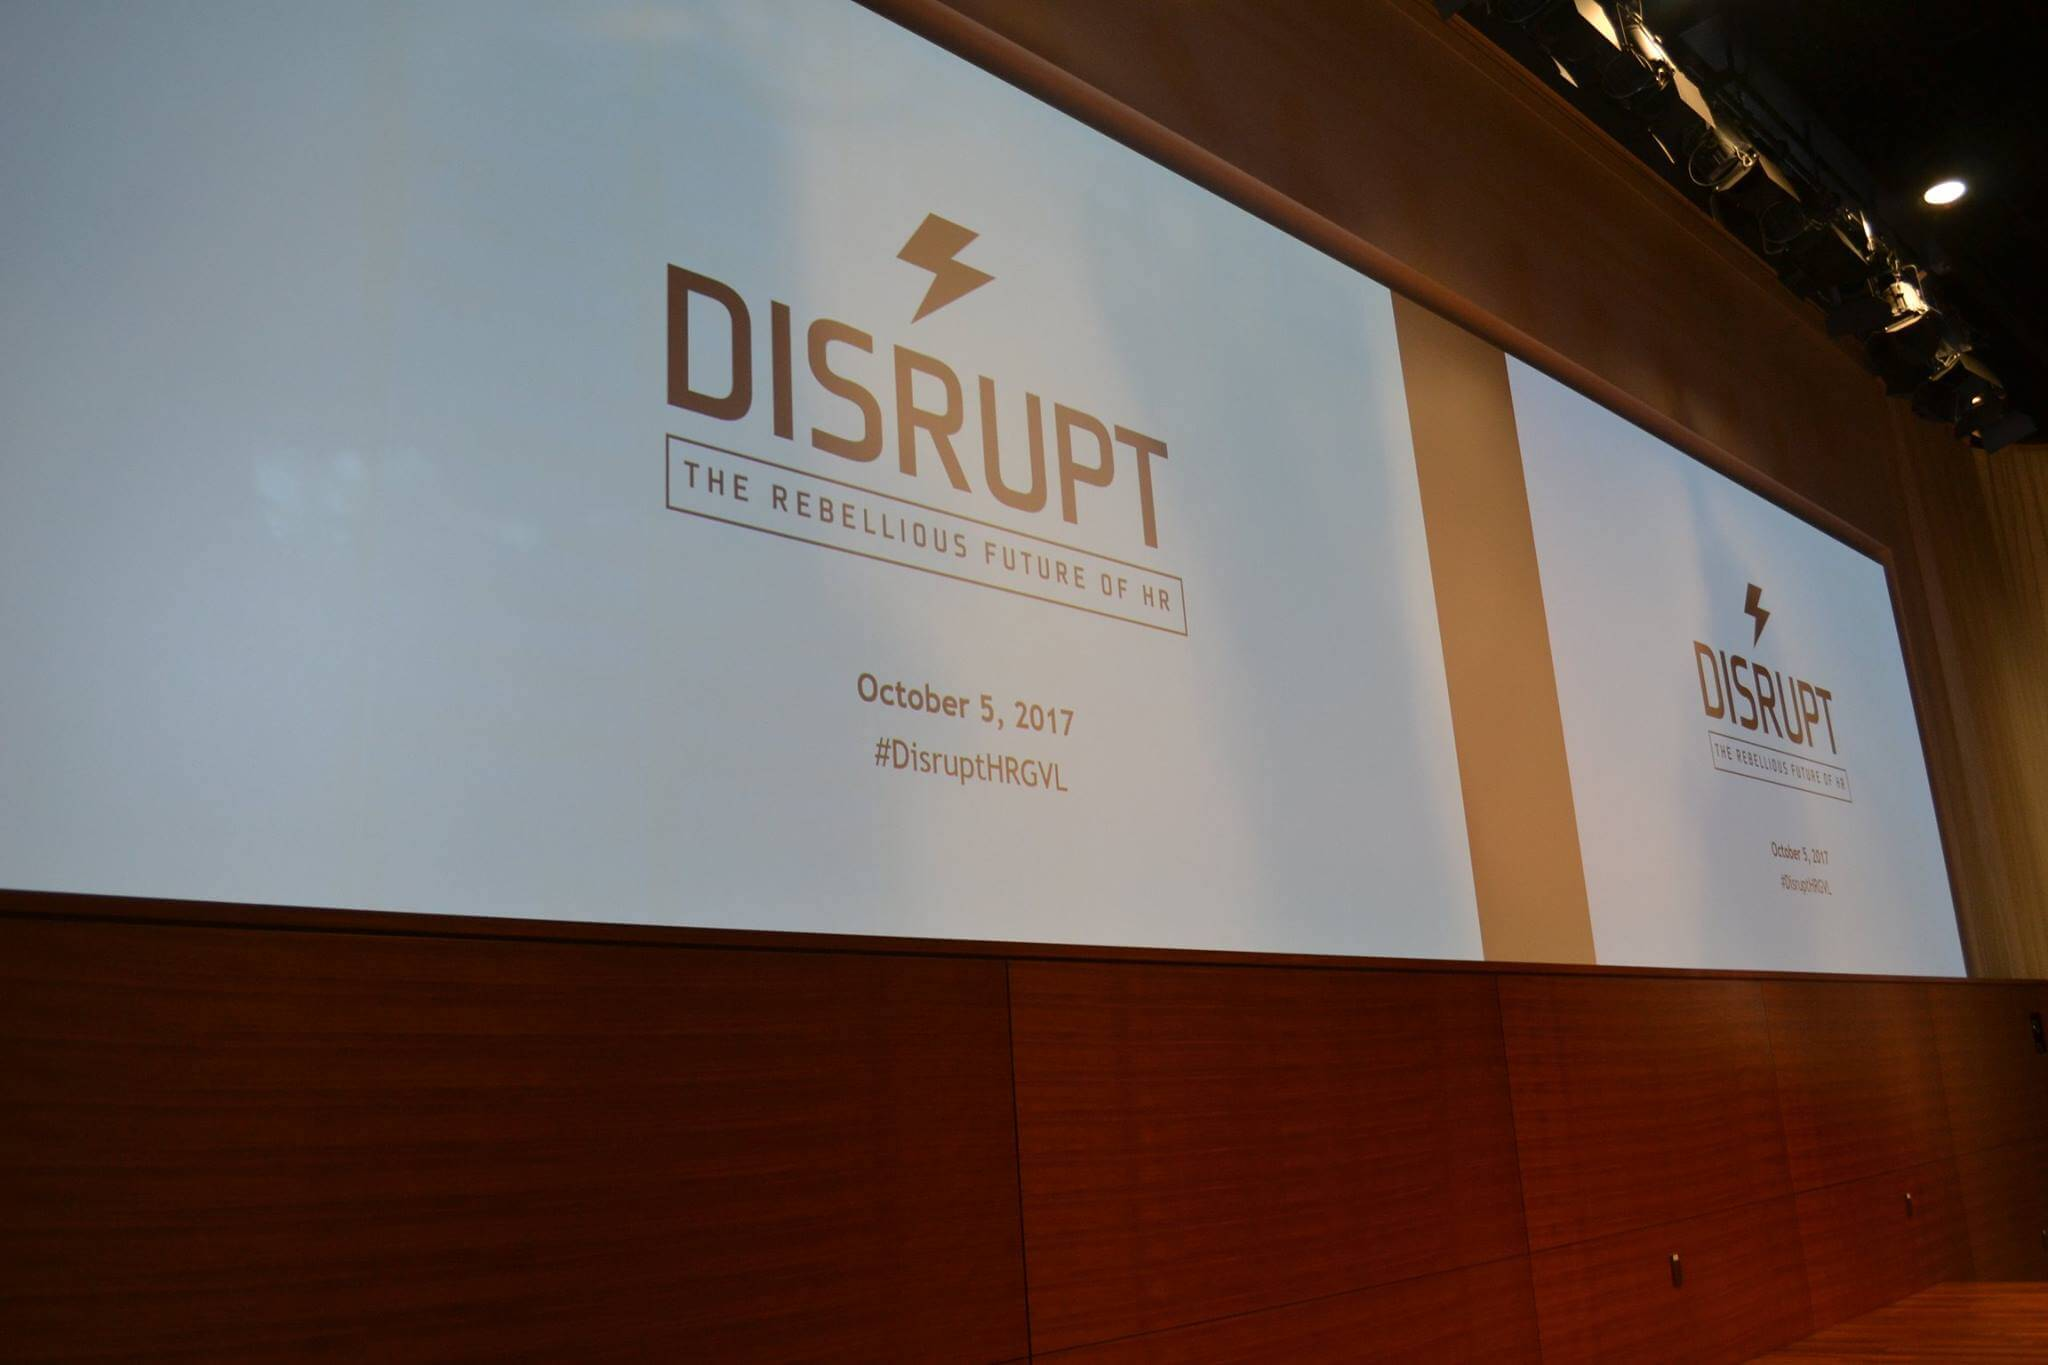 DisruptHR Greenville